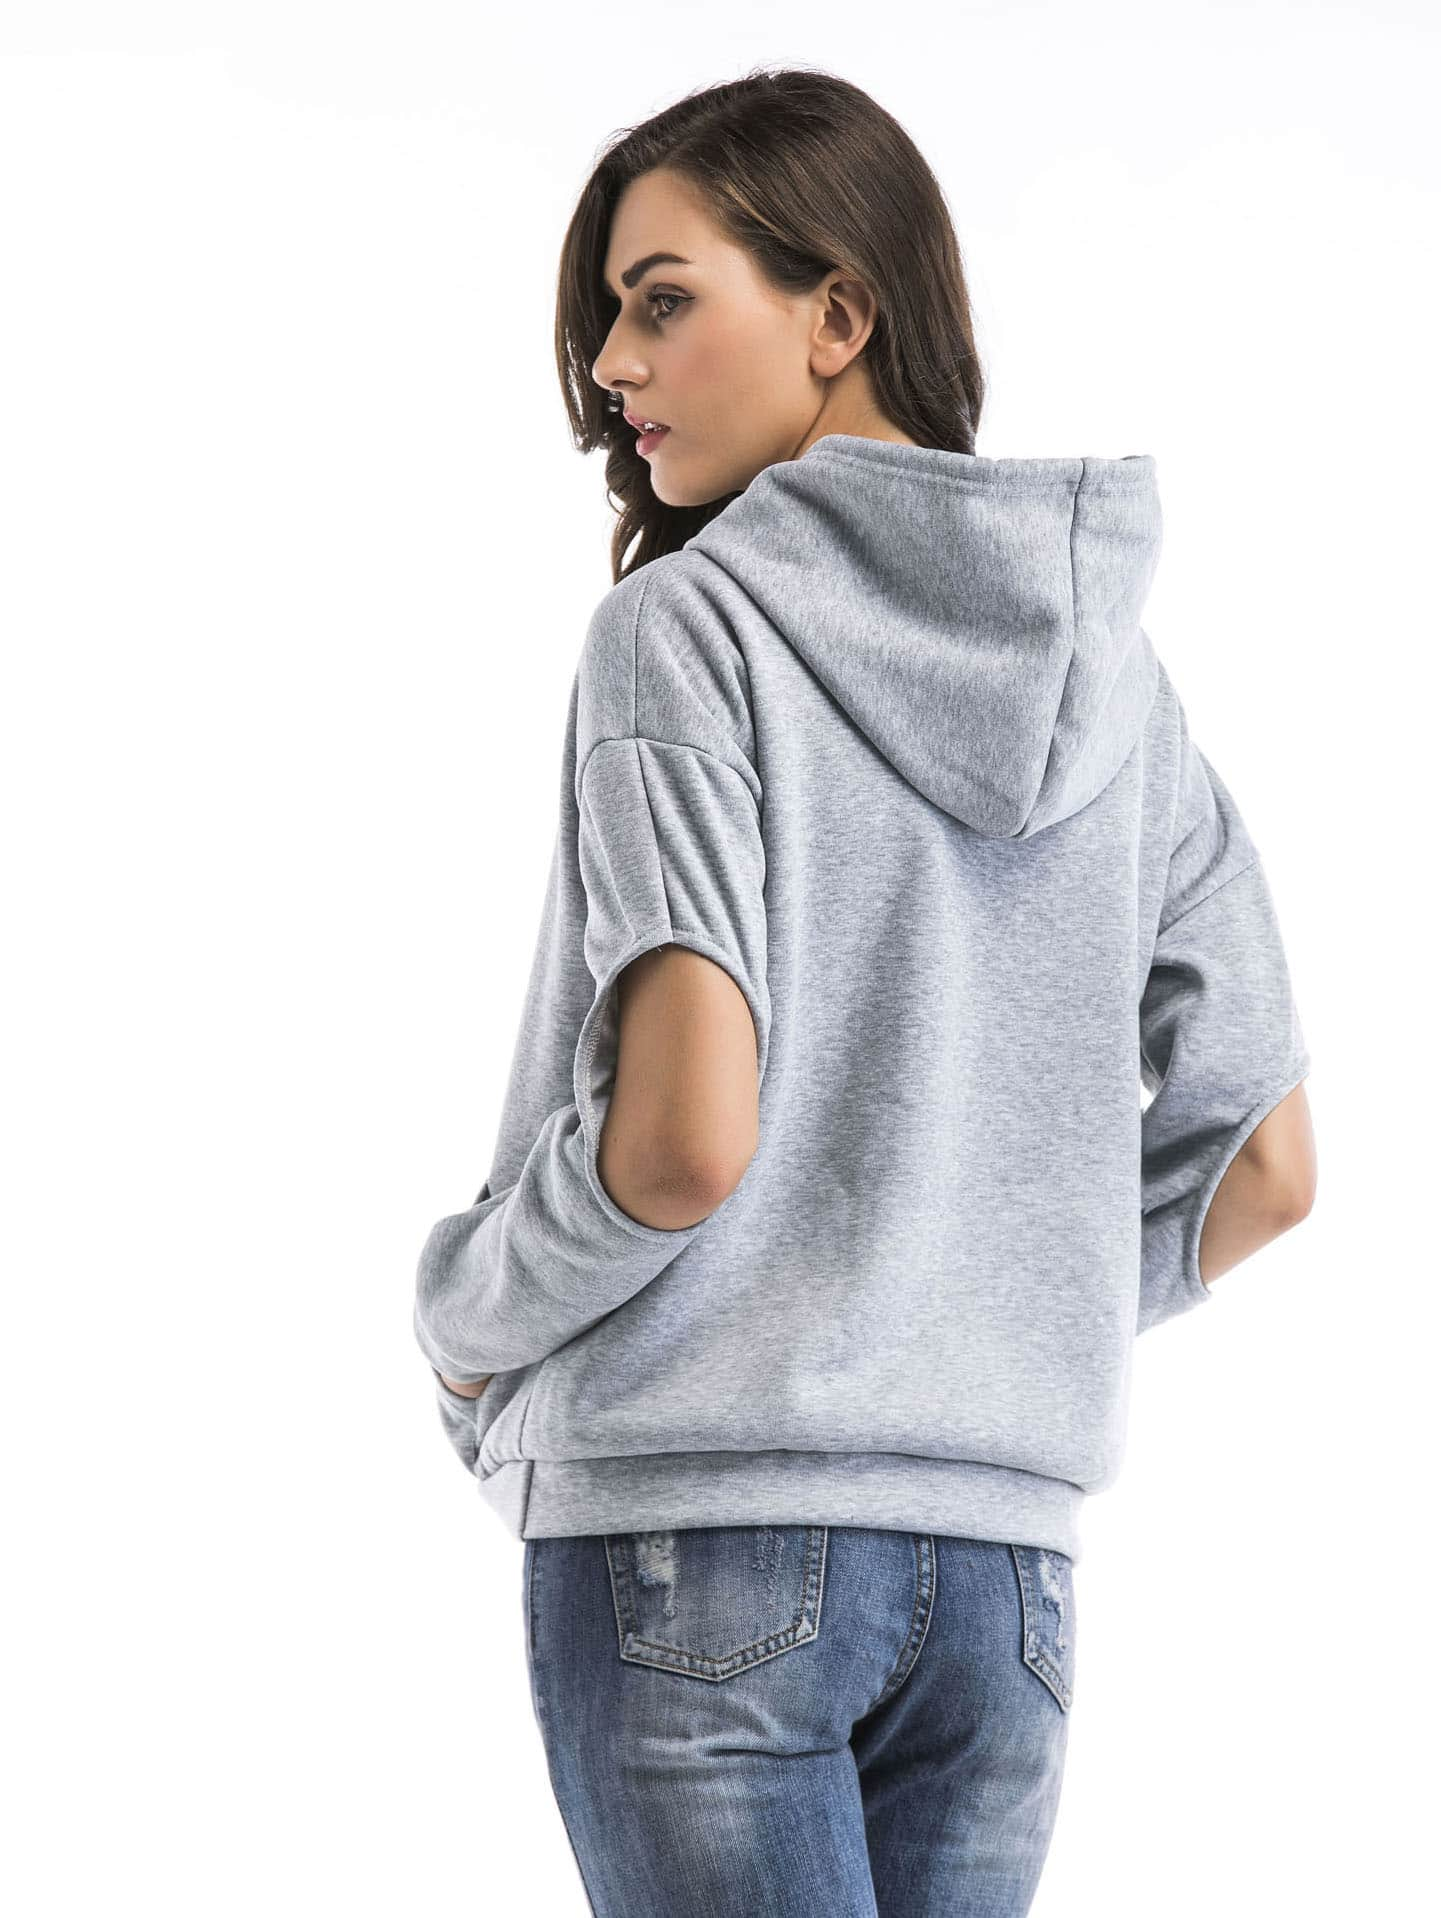 Hollow Out Pocket Front Hoodie hollow out pocket front hoodie